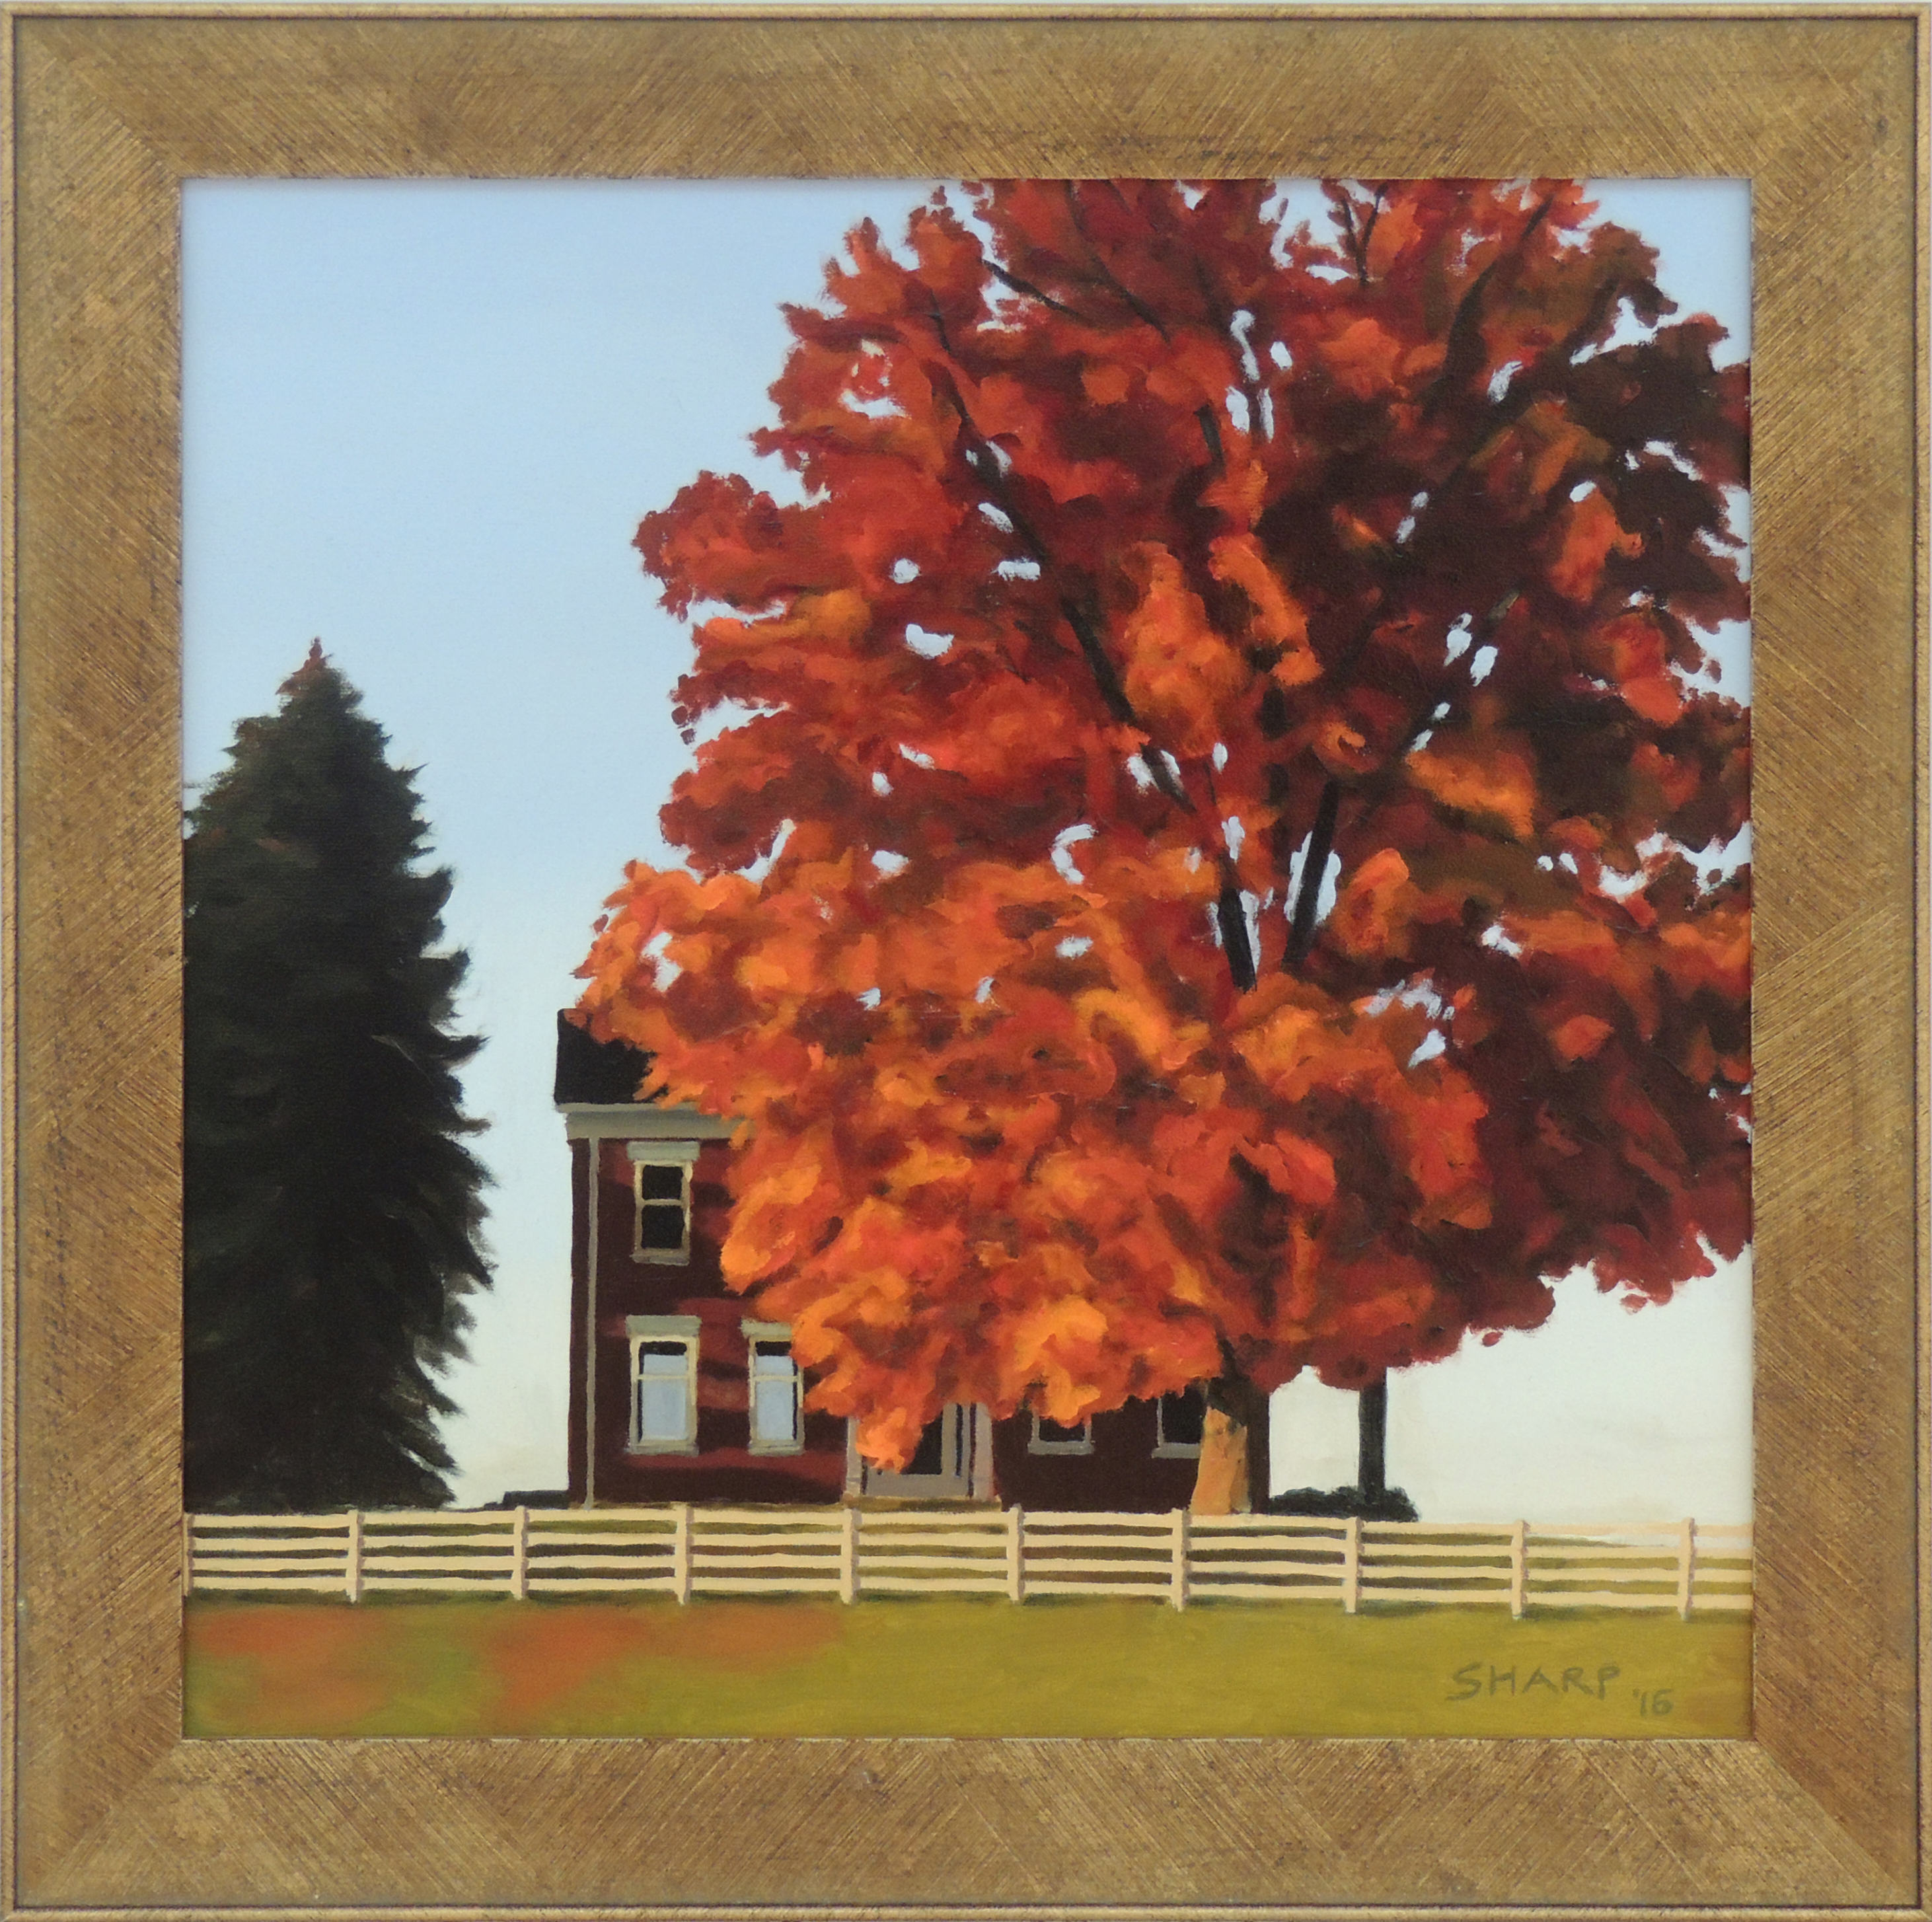 Stephen Sharp | NOVEMBER MAPLE | Oil on Canvas